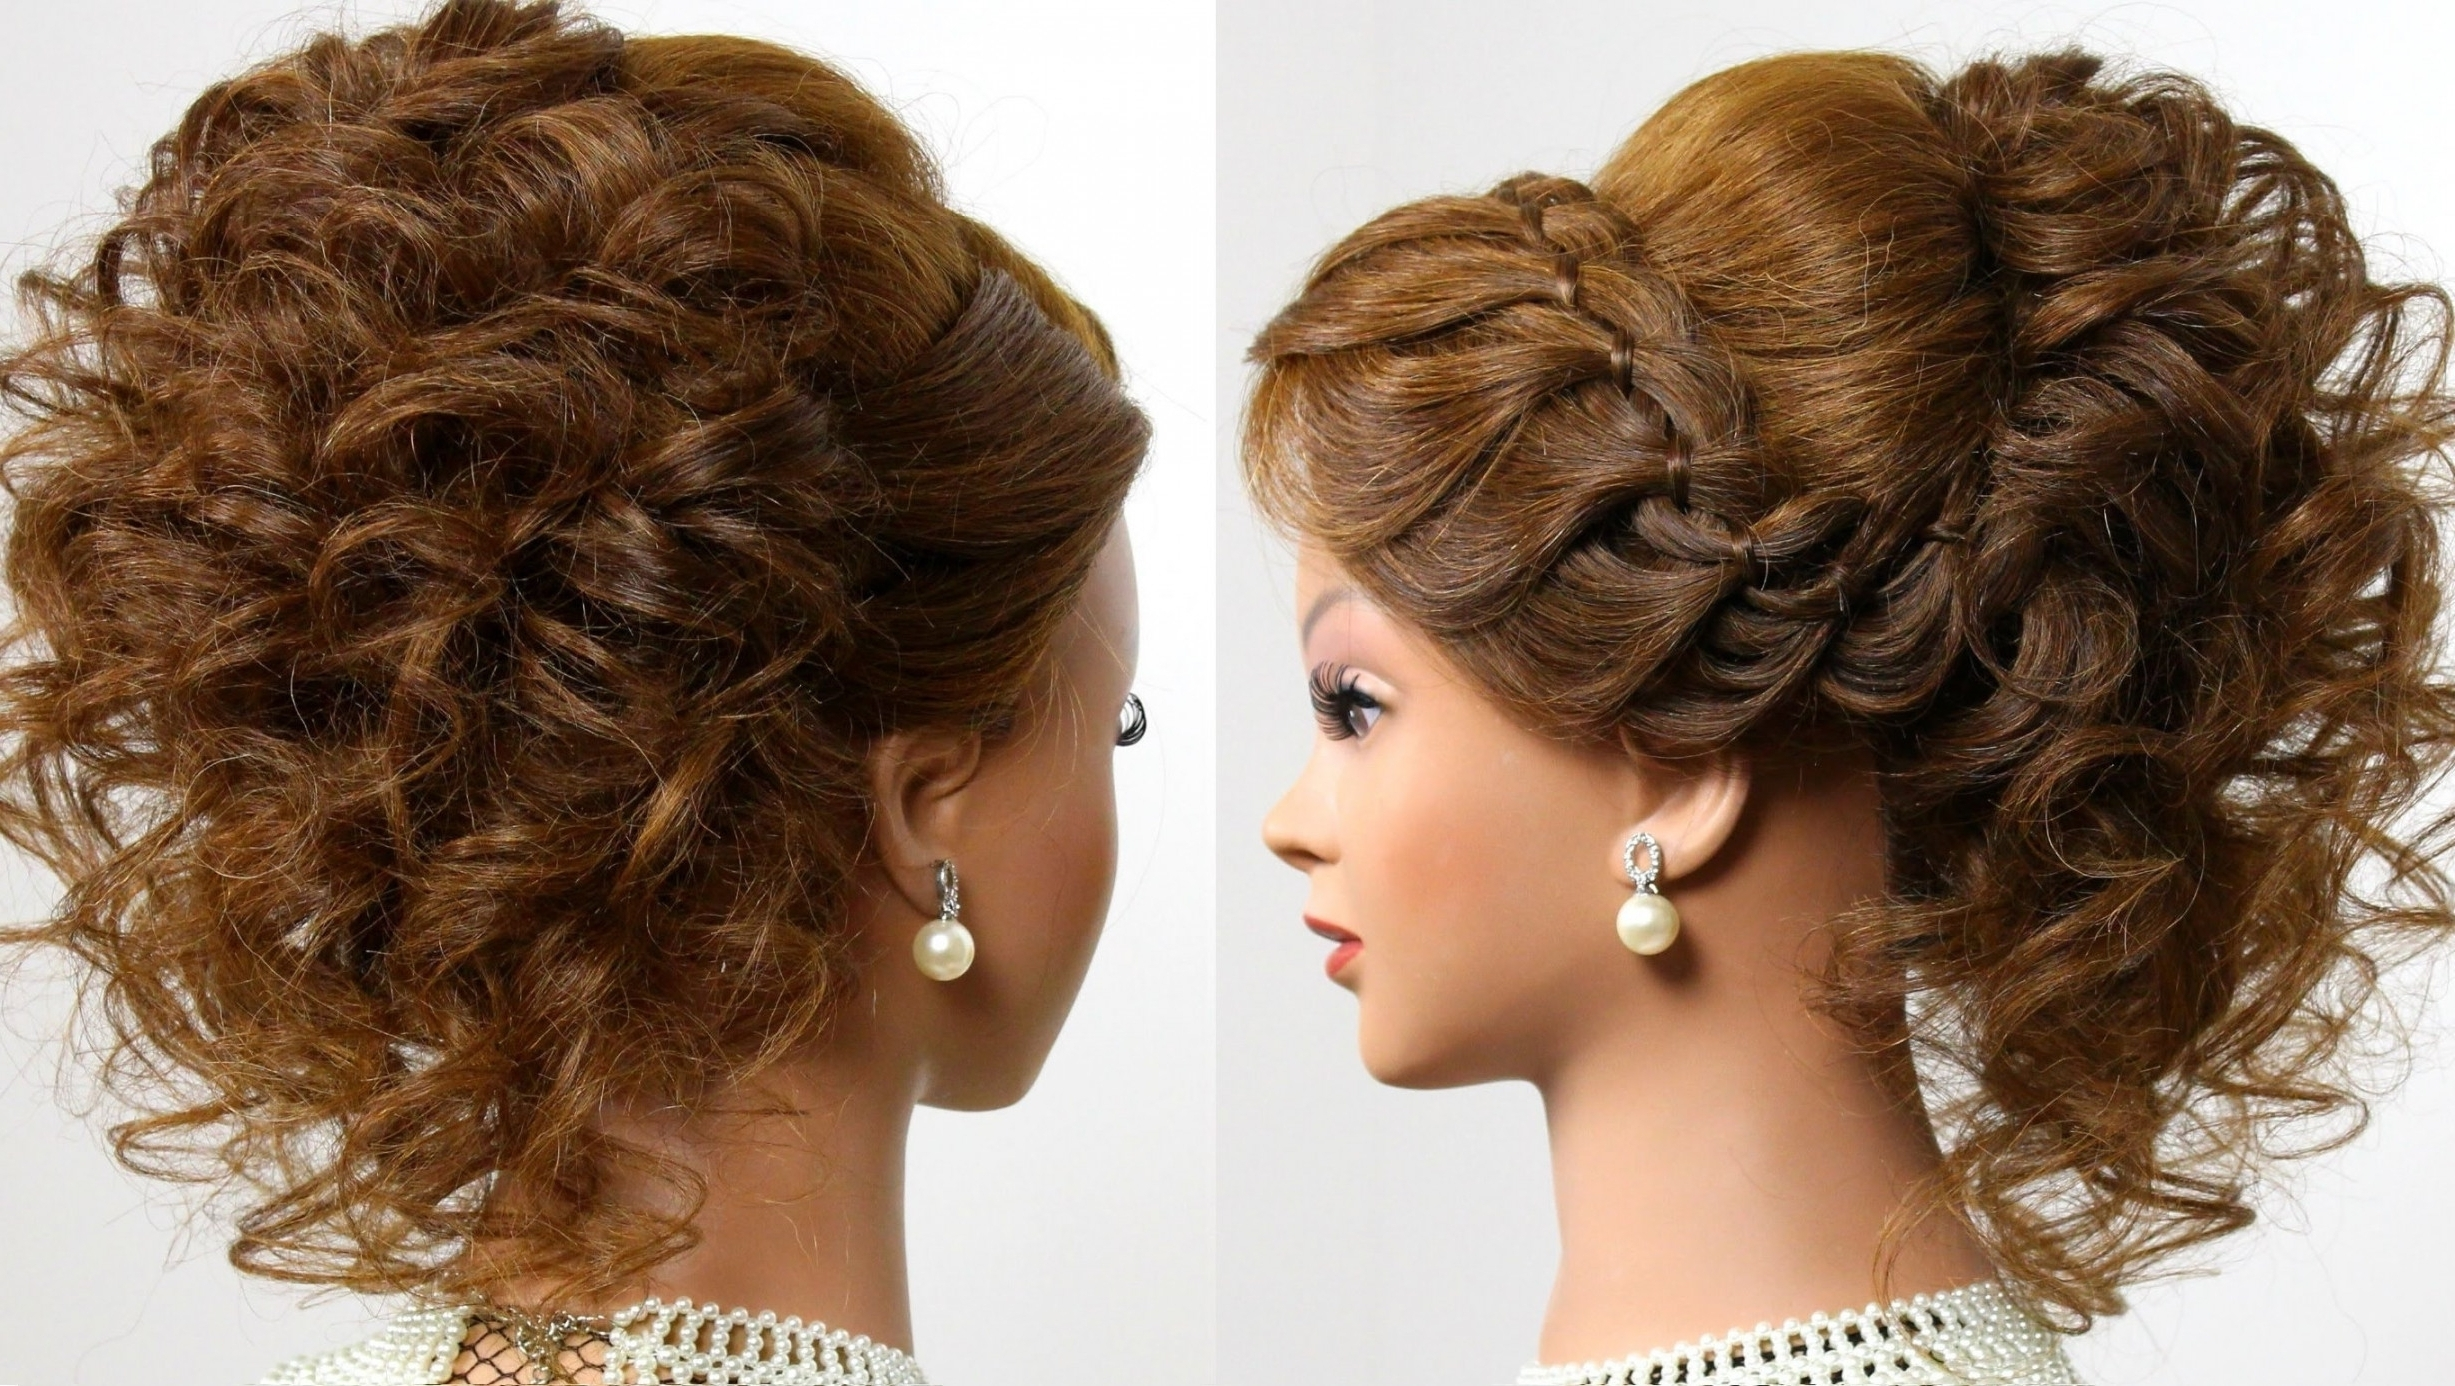 Updos For Medium Hair Prom Prom Hairstyles Curly Updos Black Hair Regarding Curly Updos For Medium Hair (Gallery 7 of 15)